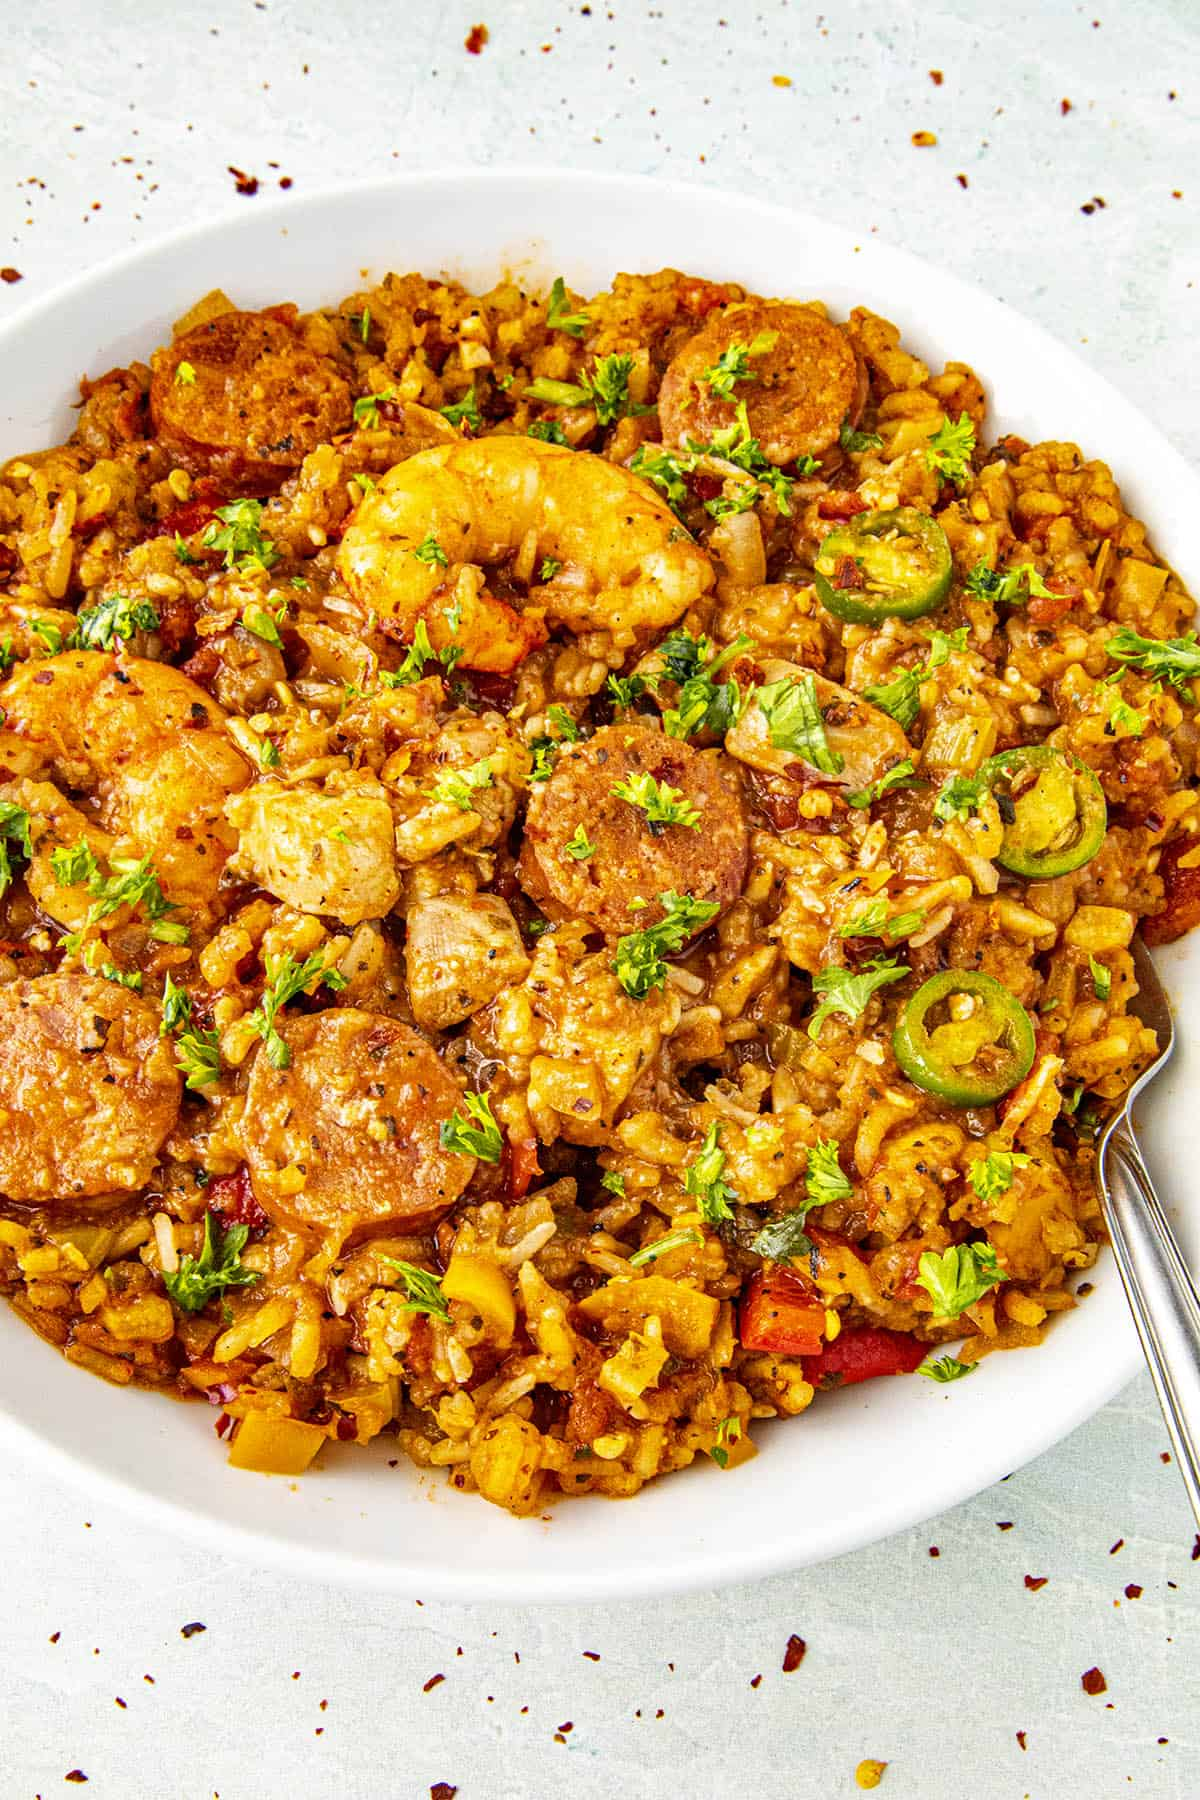 Delicious jambalaya in a bowl with a fork